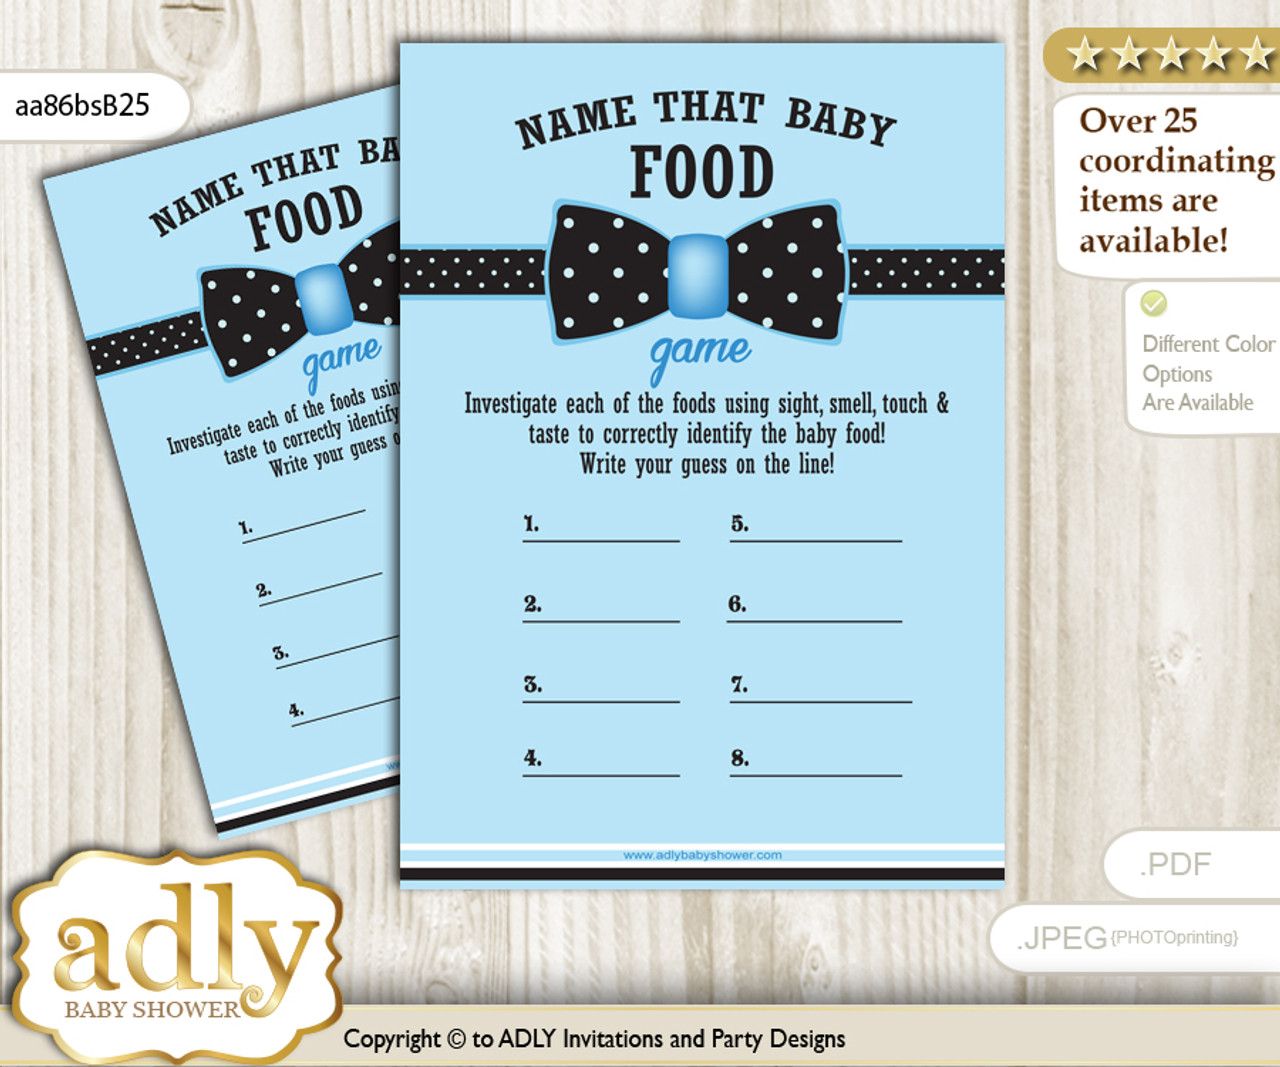 photograph about Guess the Baby Food Game Printable named Boy Bow tie Standing That Food items, Child Food items wager Recreation Printable Card for Youngster Bow tie Shower Do it yourself Blue Black Dots-aa86bsB25